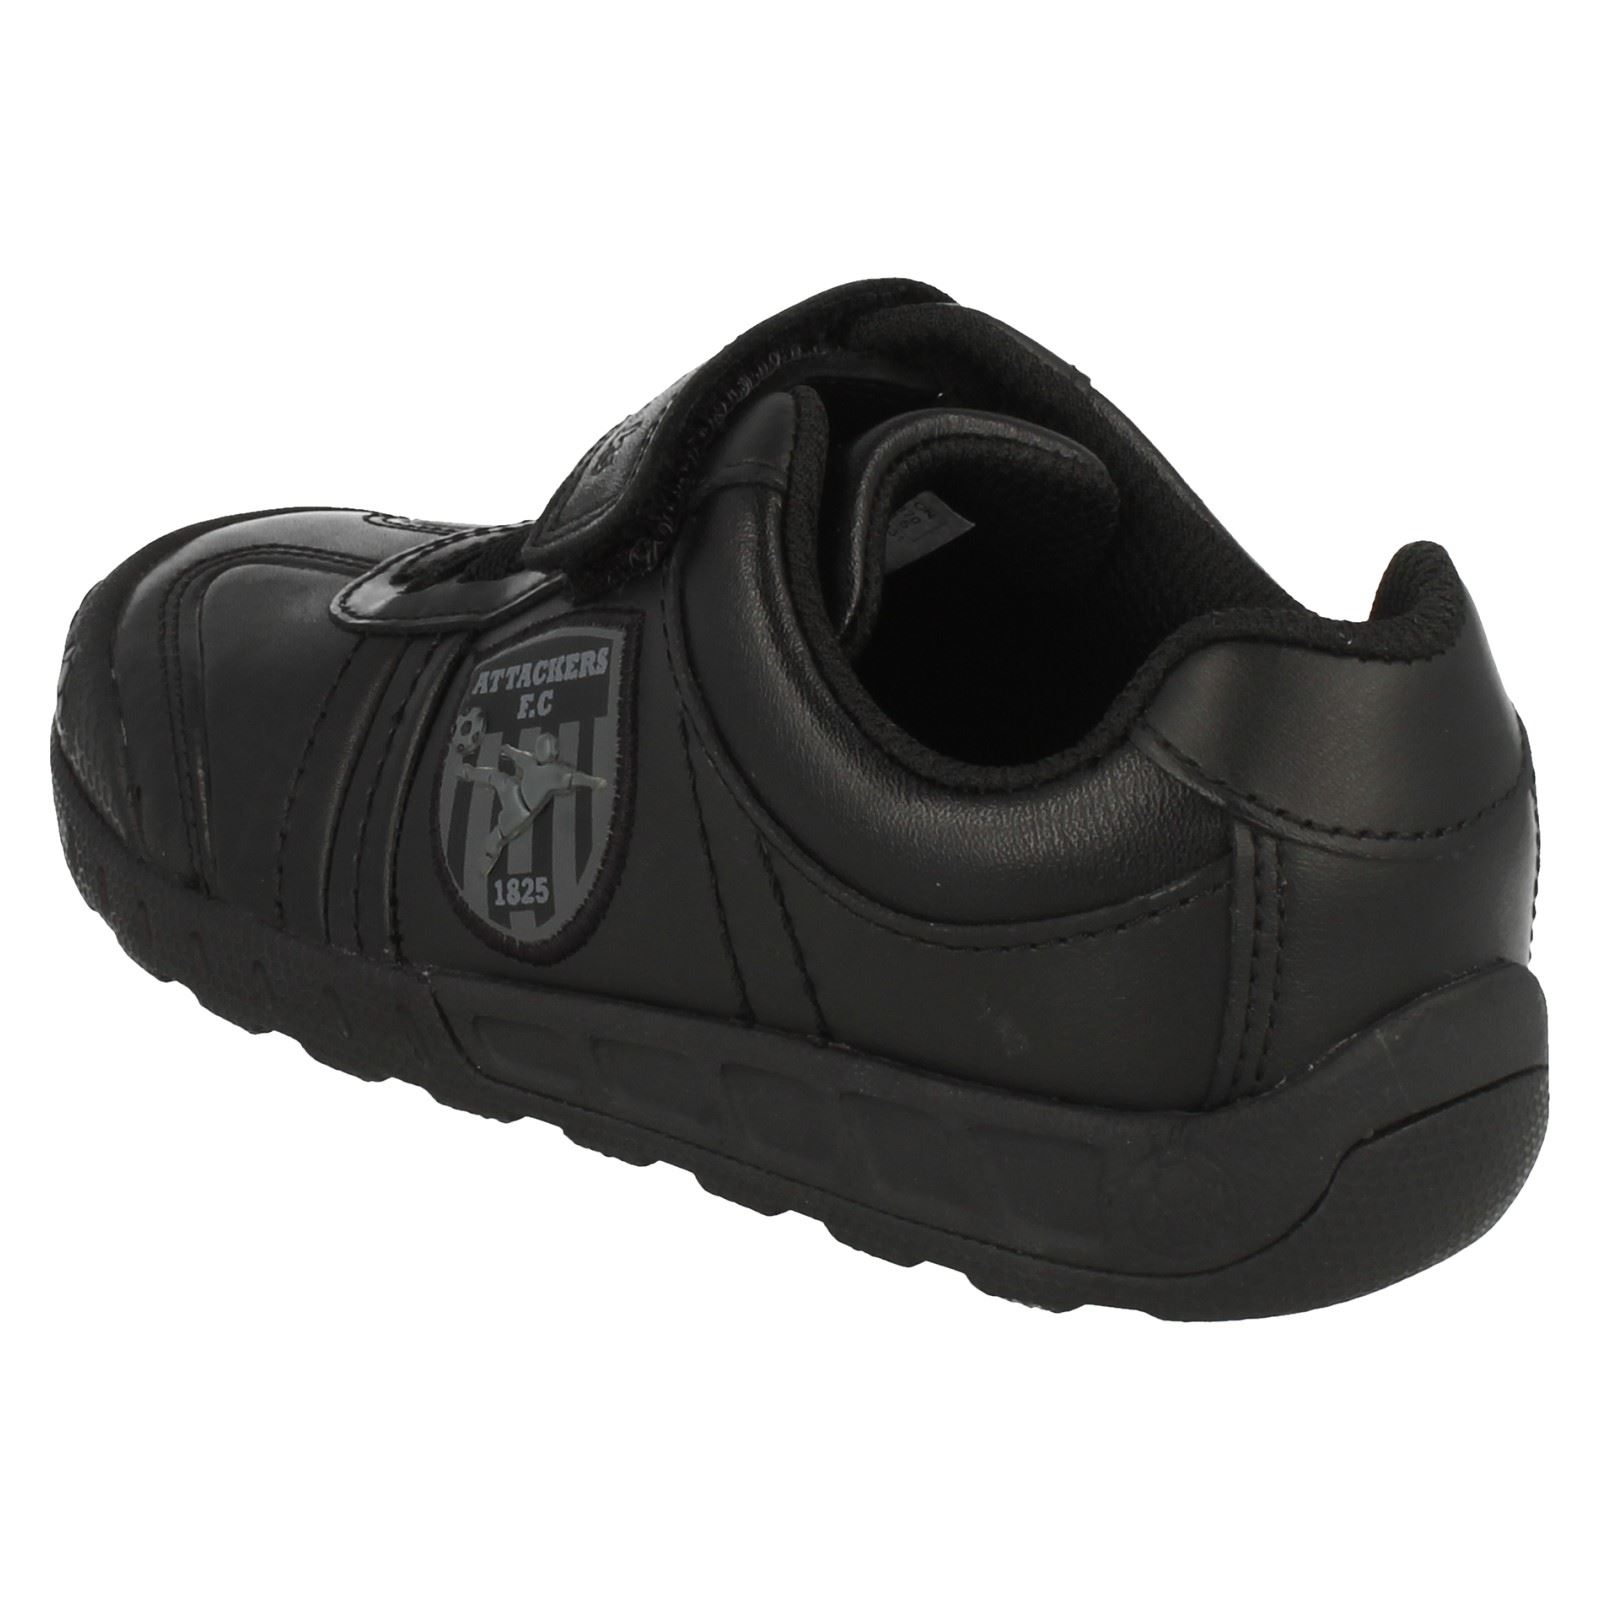 Gioca Clarks Shoes School Black a Boys Leader xqg0wqTF